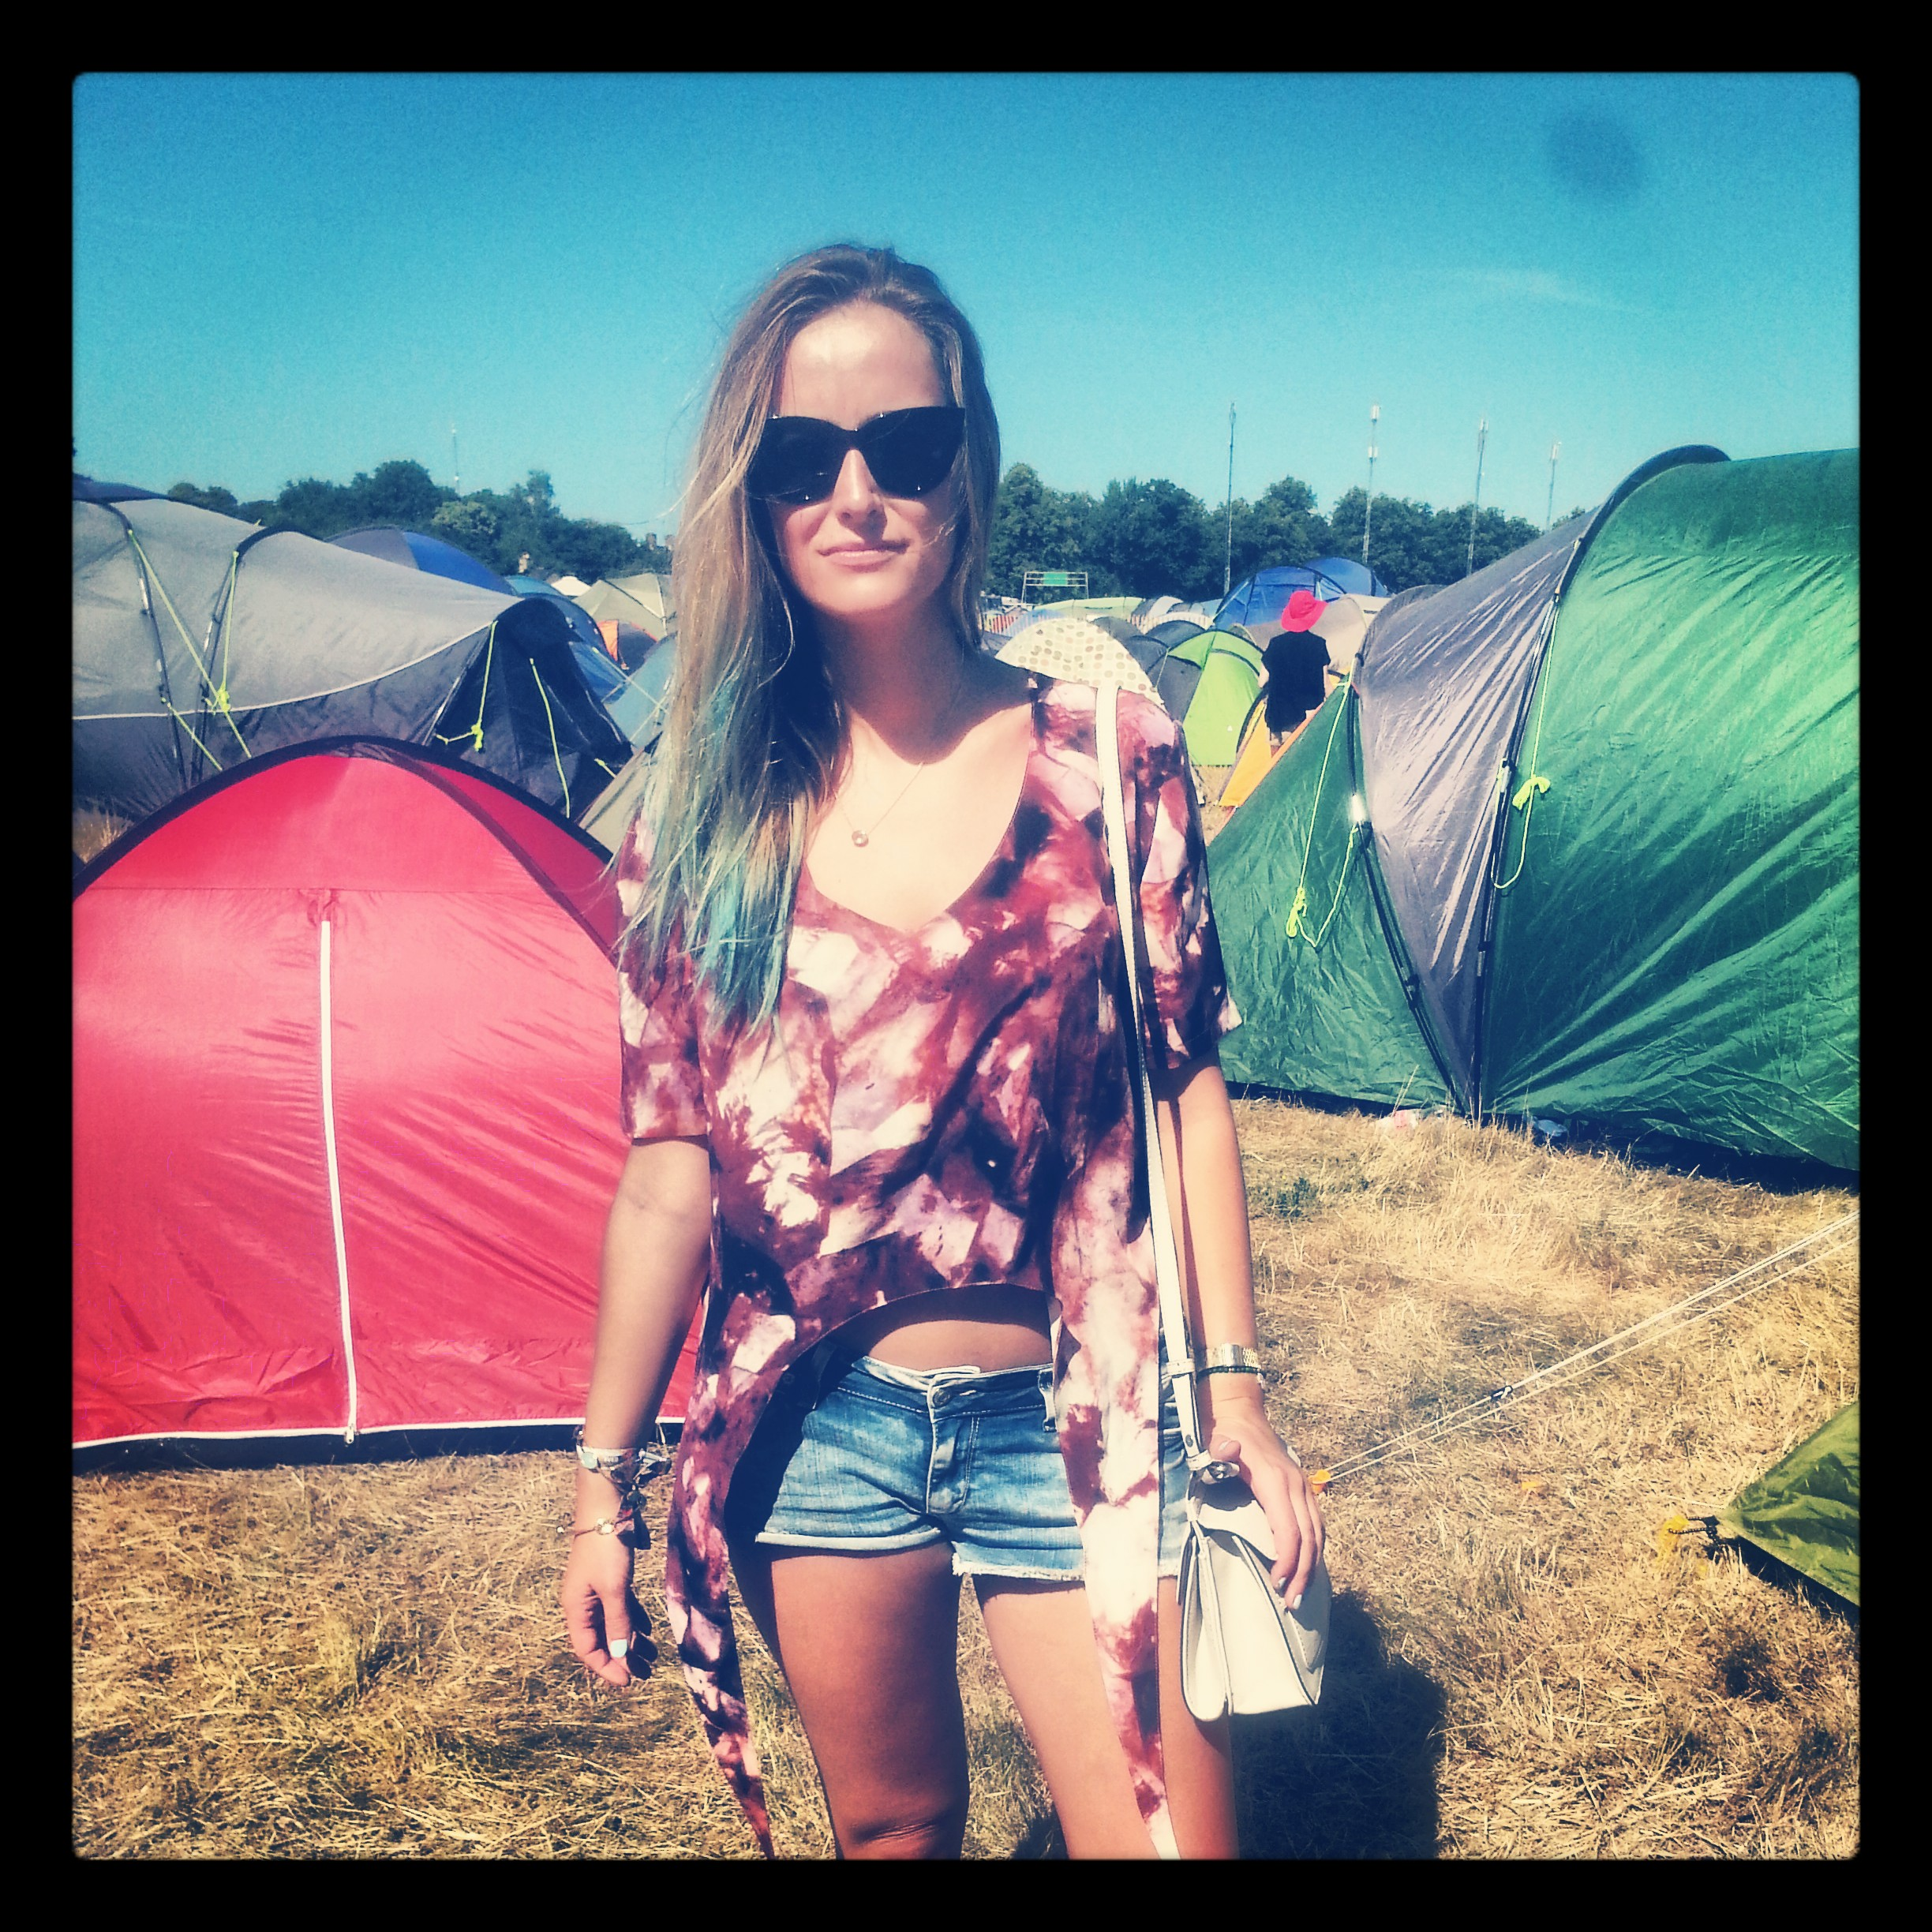 2013-07-23-Outfit.jpg